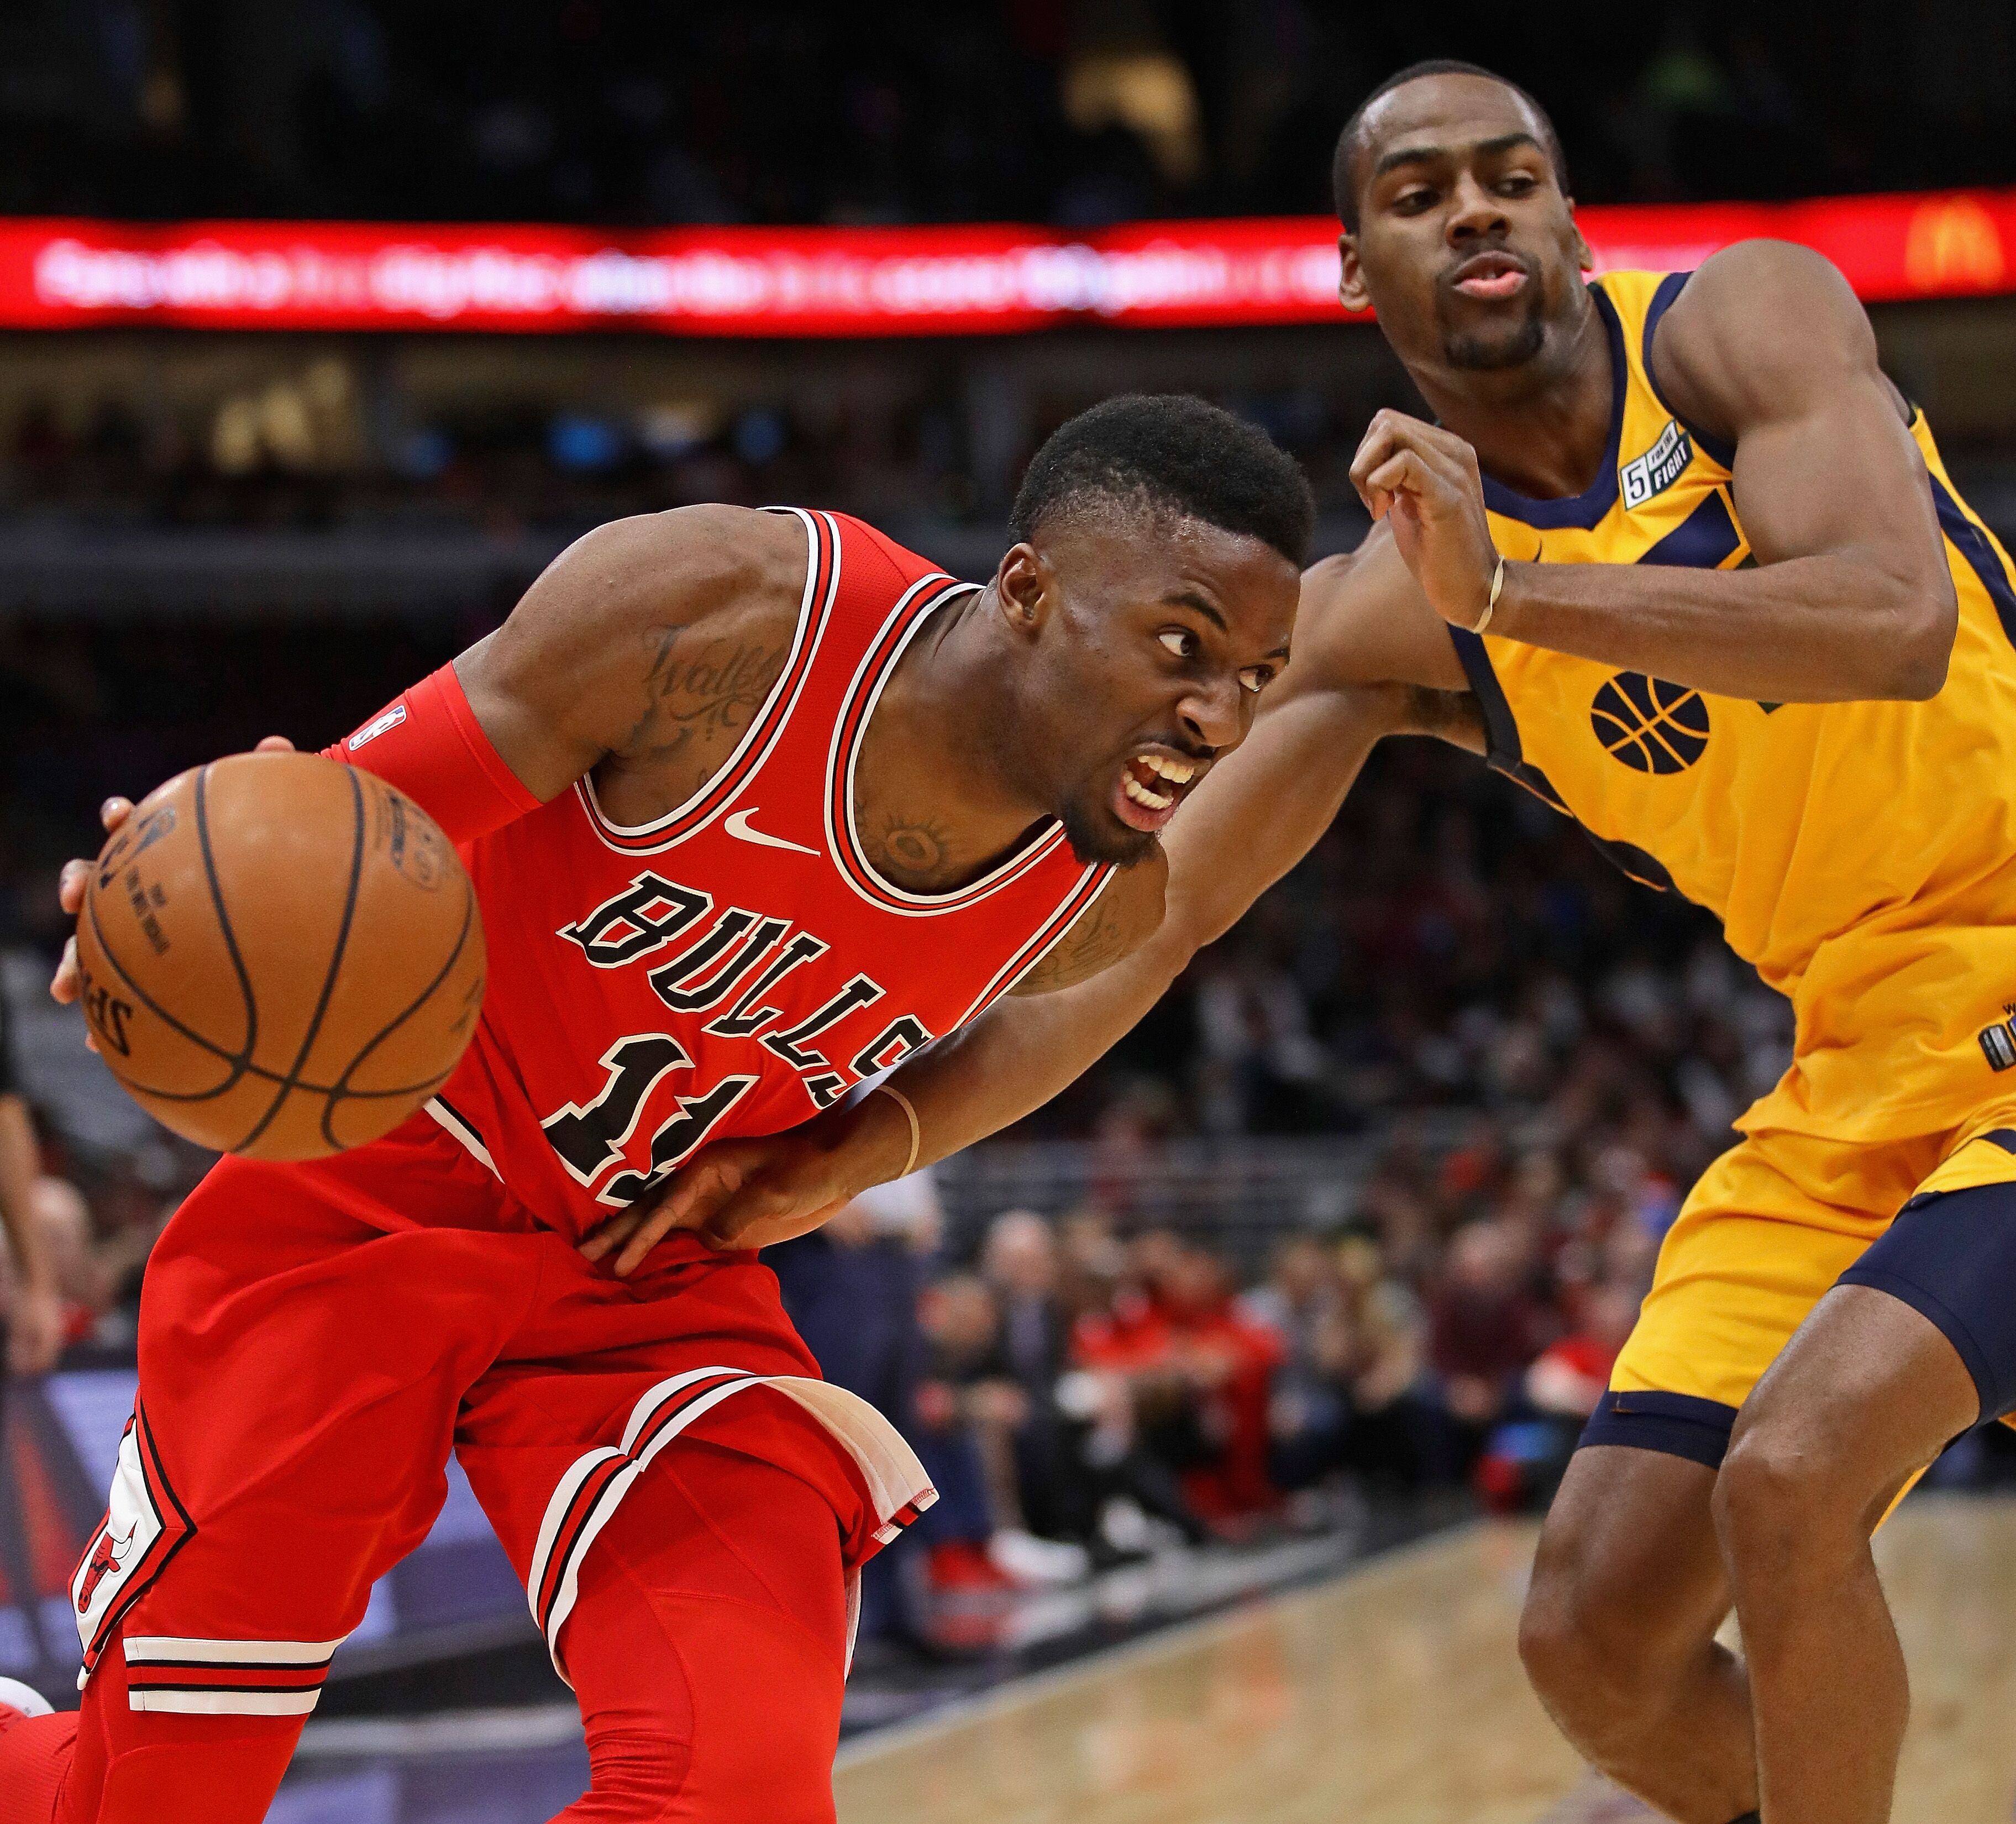 891985666-utah-jazz-v-chicago-bulls.jpg